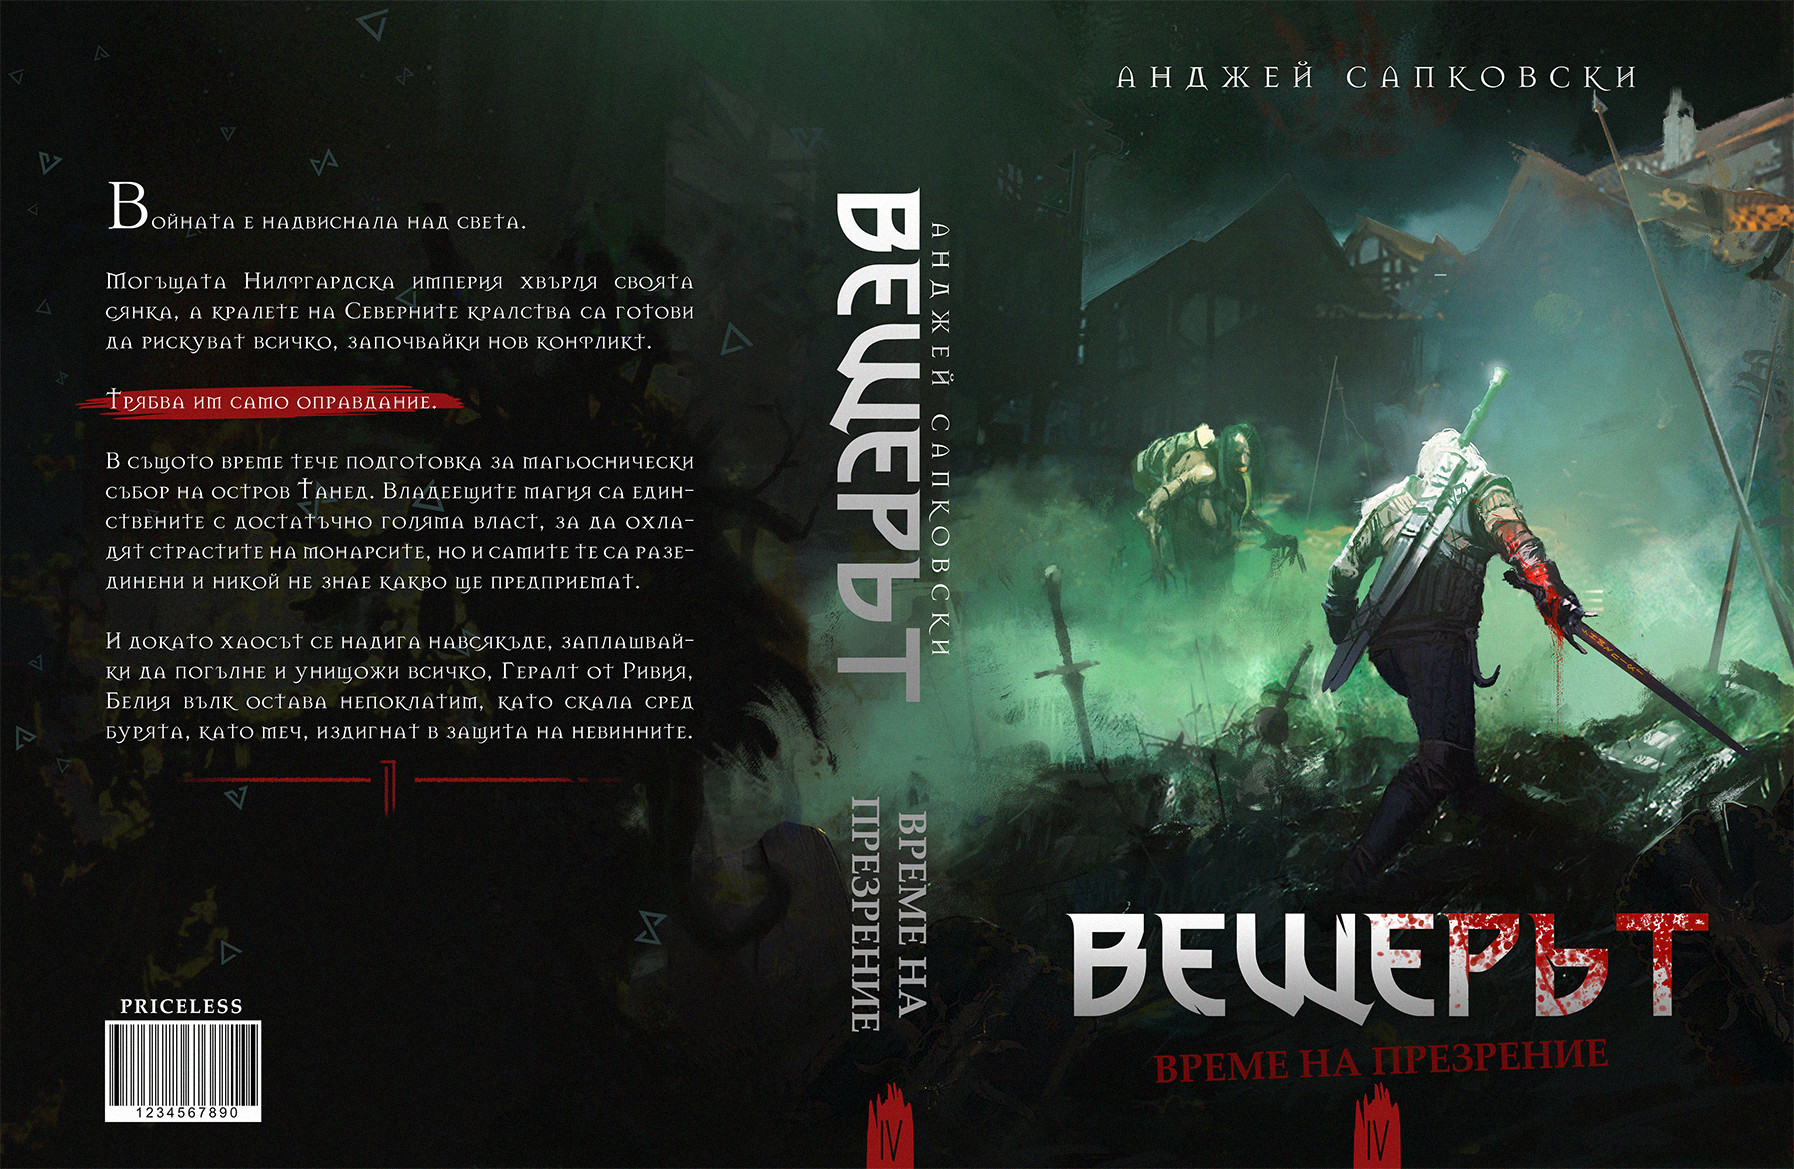 Ismail inceoglu the witcher 4th book cover fanart